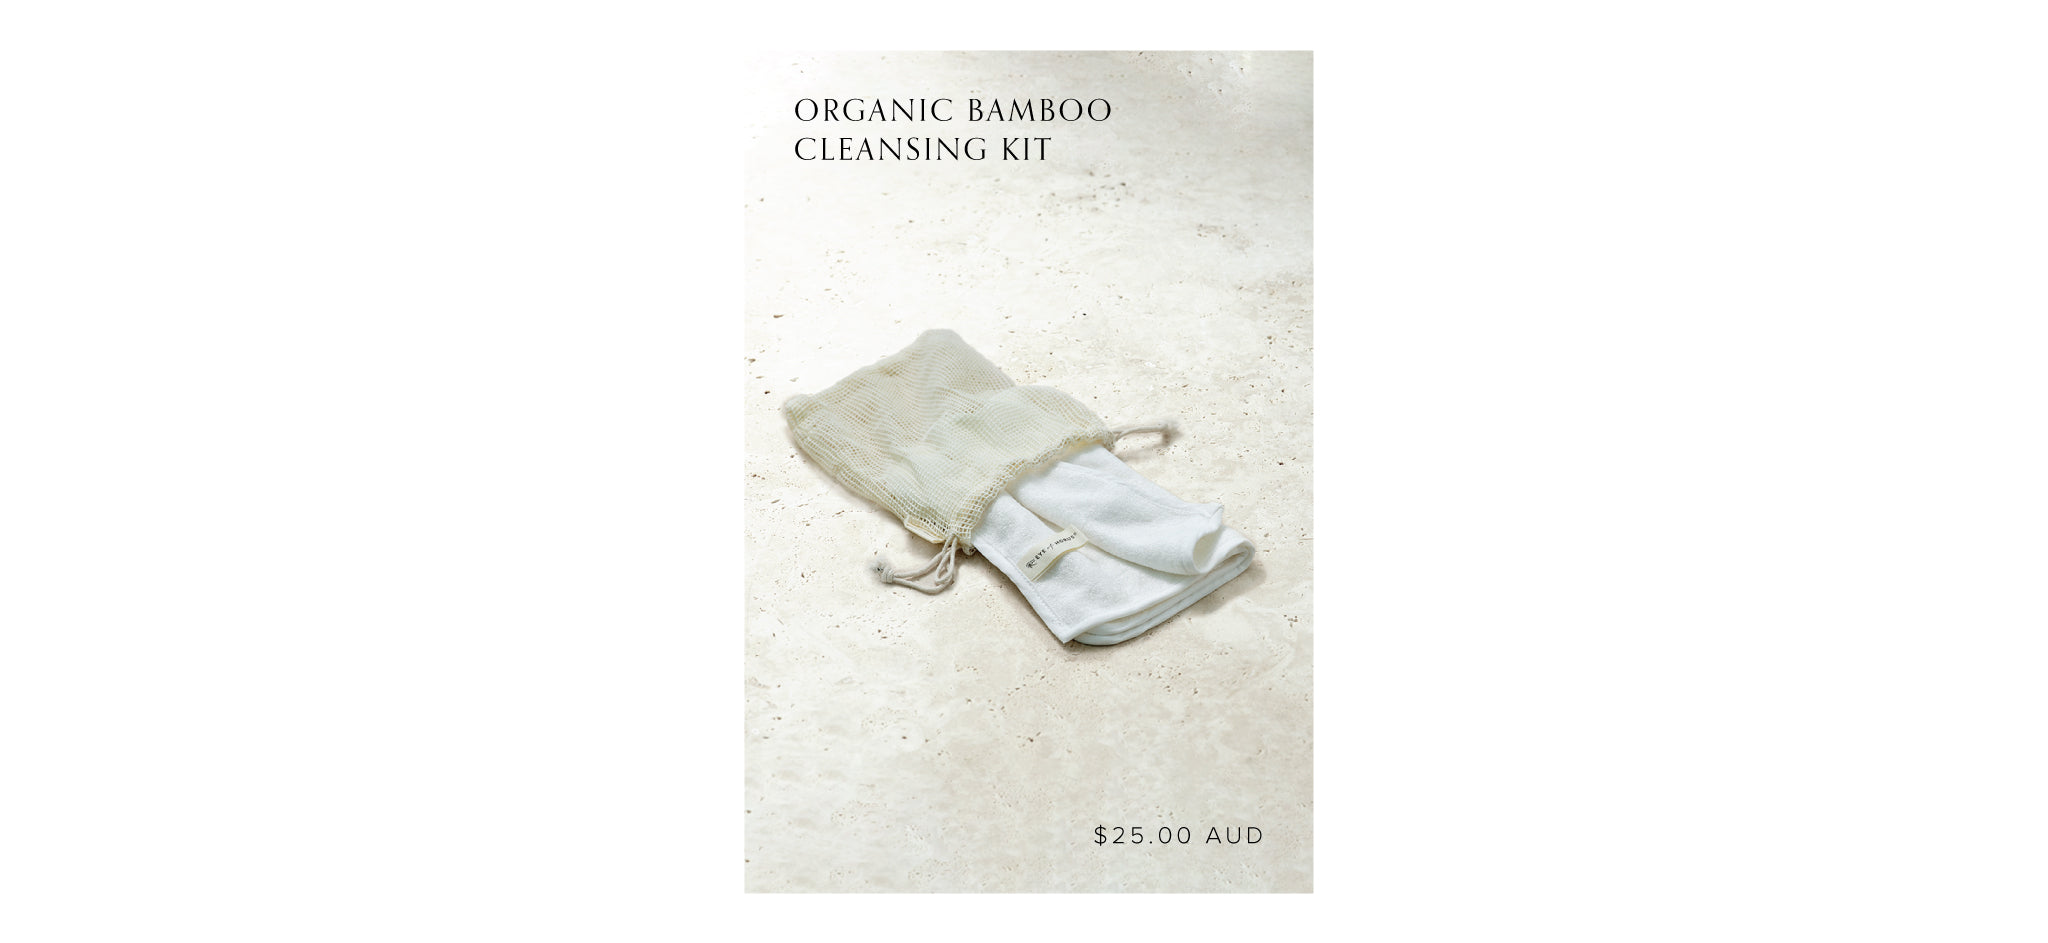 Shop Organic Bamboo Cleansing Kit